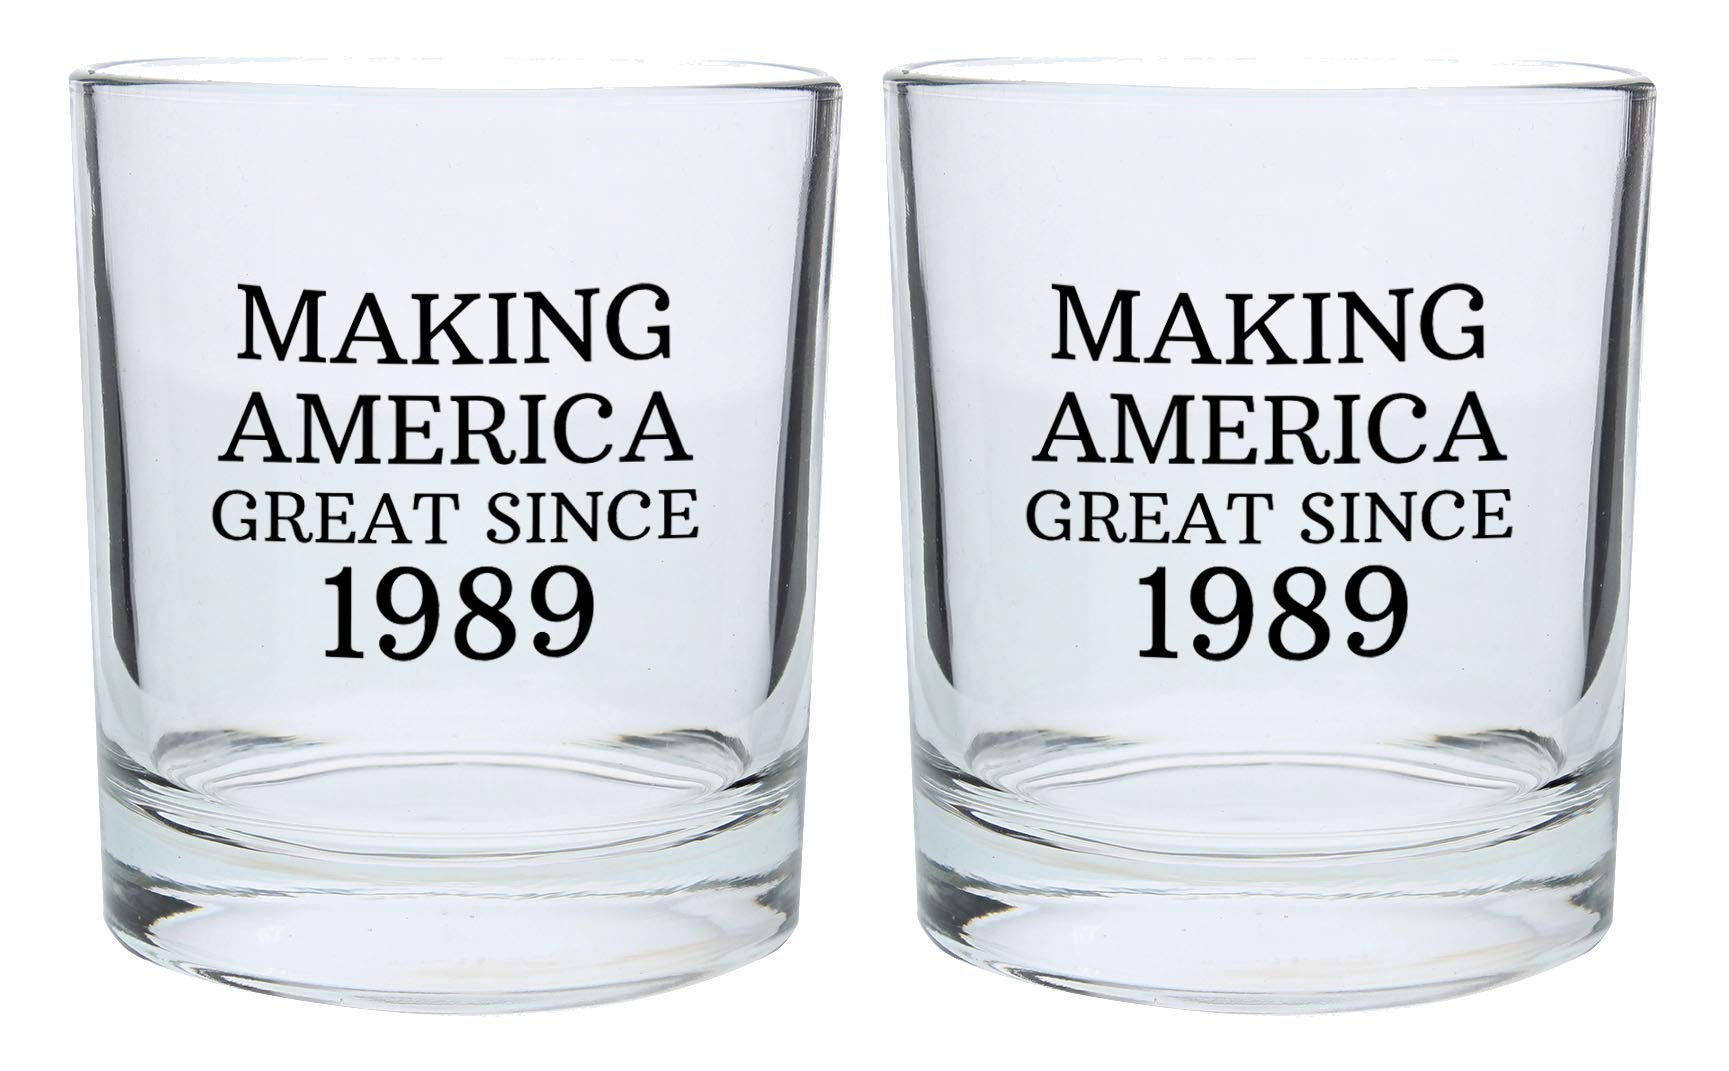 30th Birthday Gifts for Brother Sister Making America Great Since 1989 30th Birthday Party Supplies Gift Lowball Glasses 2-Pack Round Lowball Tumbler Set Black by ThisWear (Image #1)